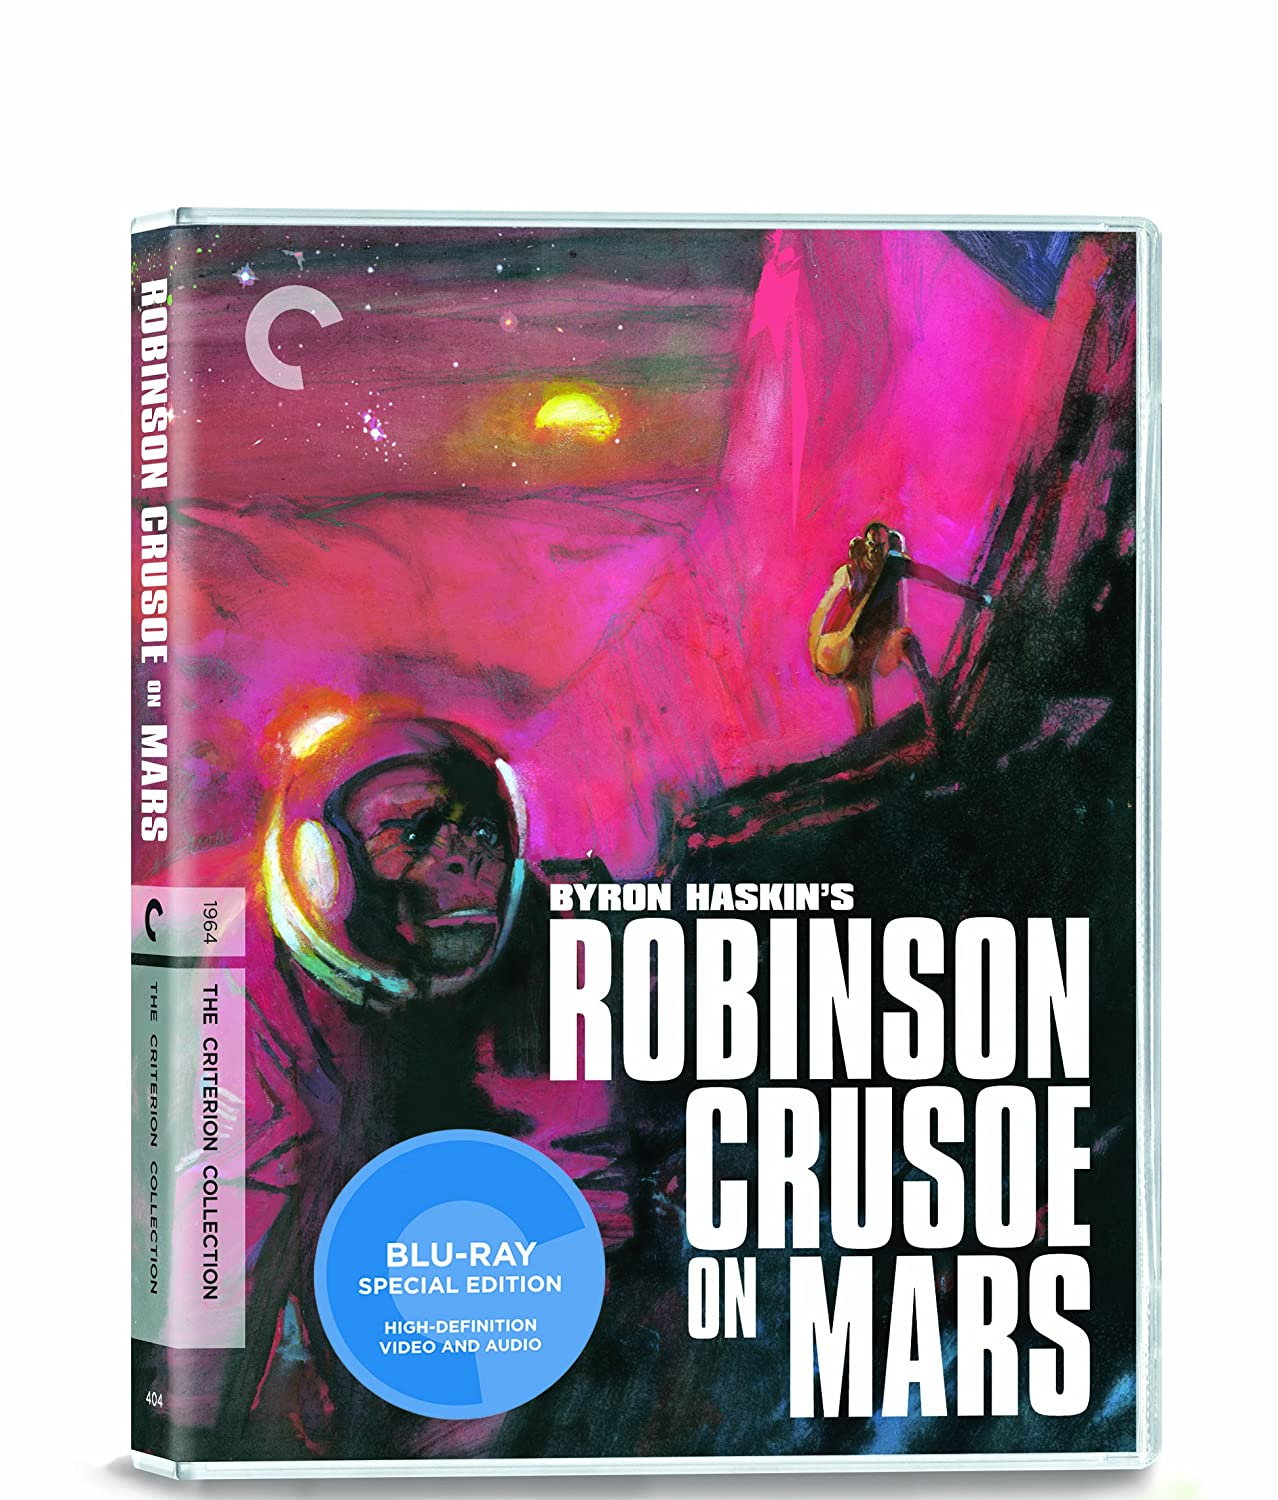 com robinson crusoe on mars the criterion collection  com robinson crusoe on mars the criterion collection blu ray paul mantee victor lundin adam west mona byron haskin movies tv